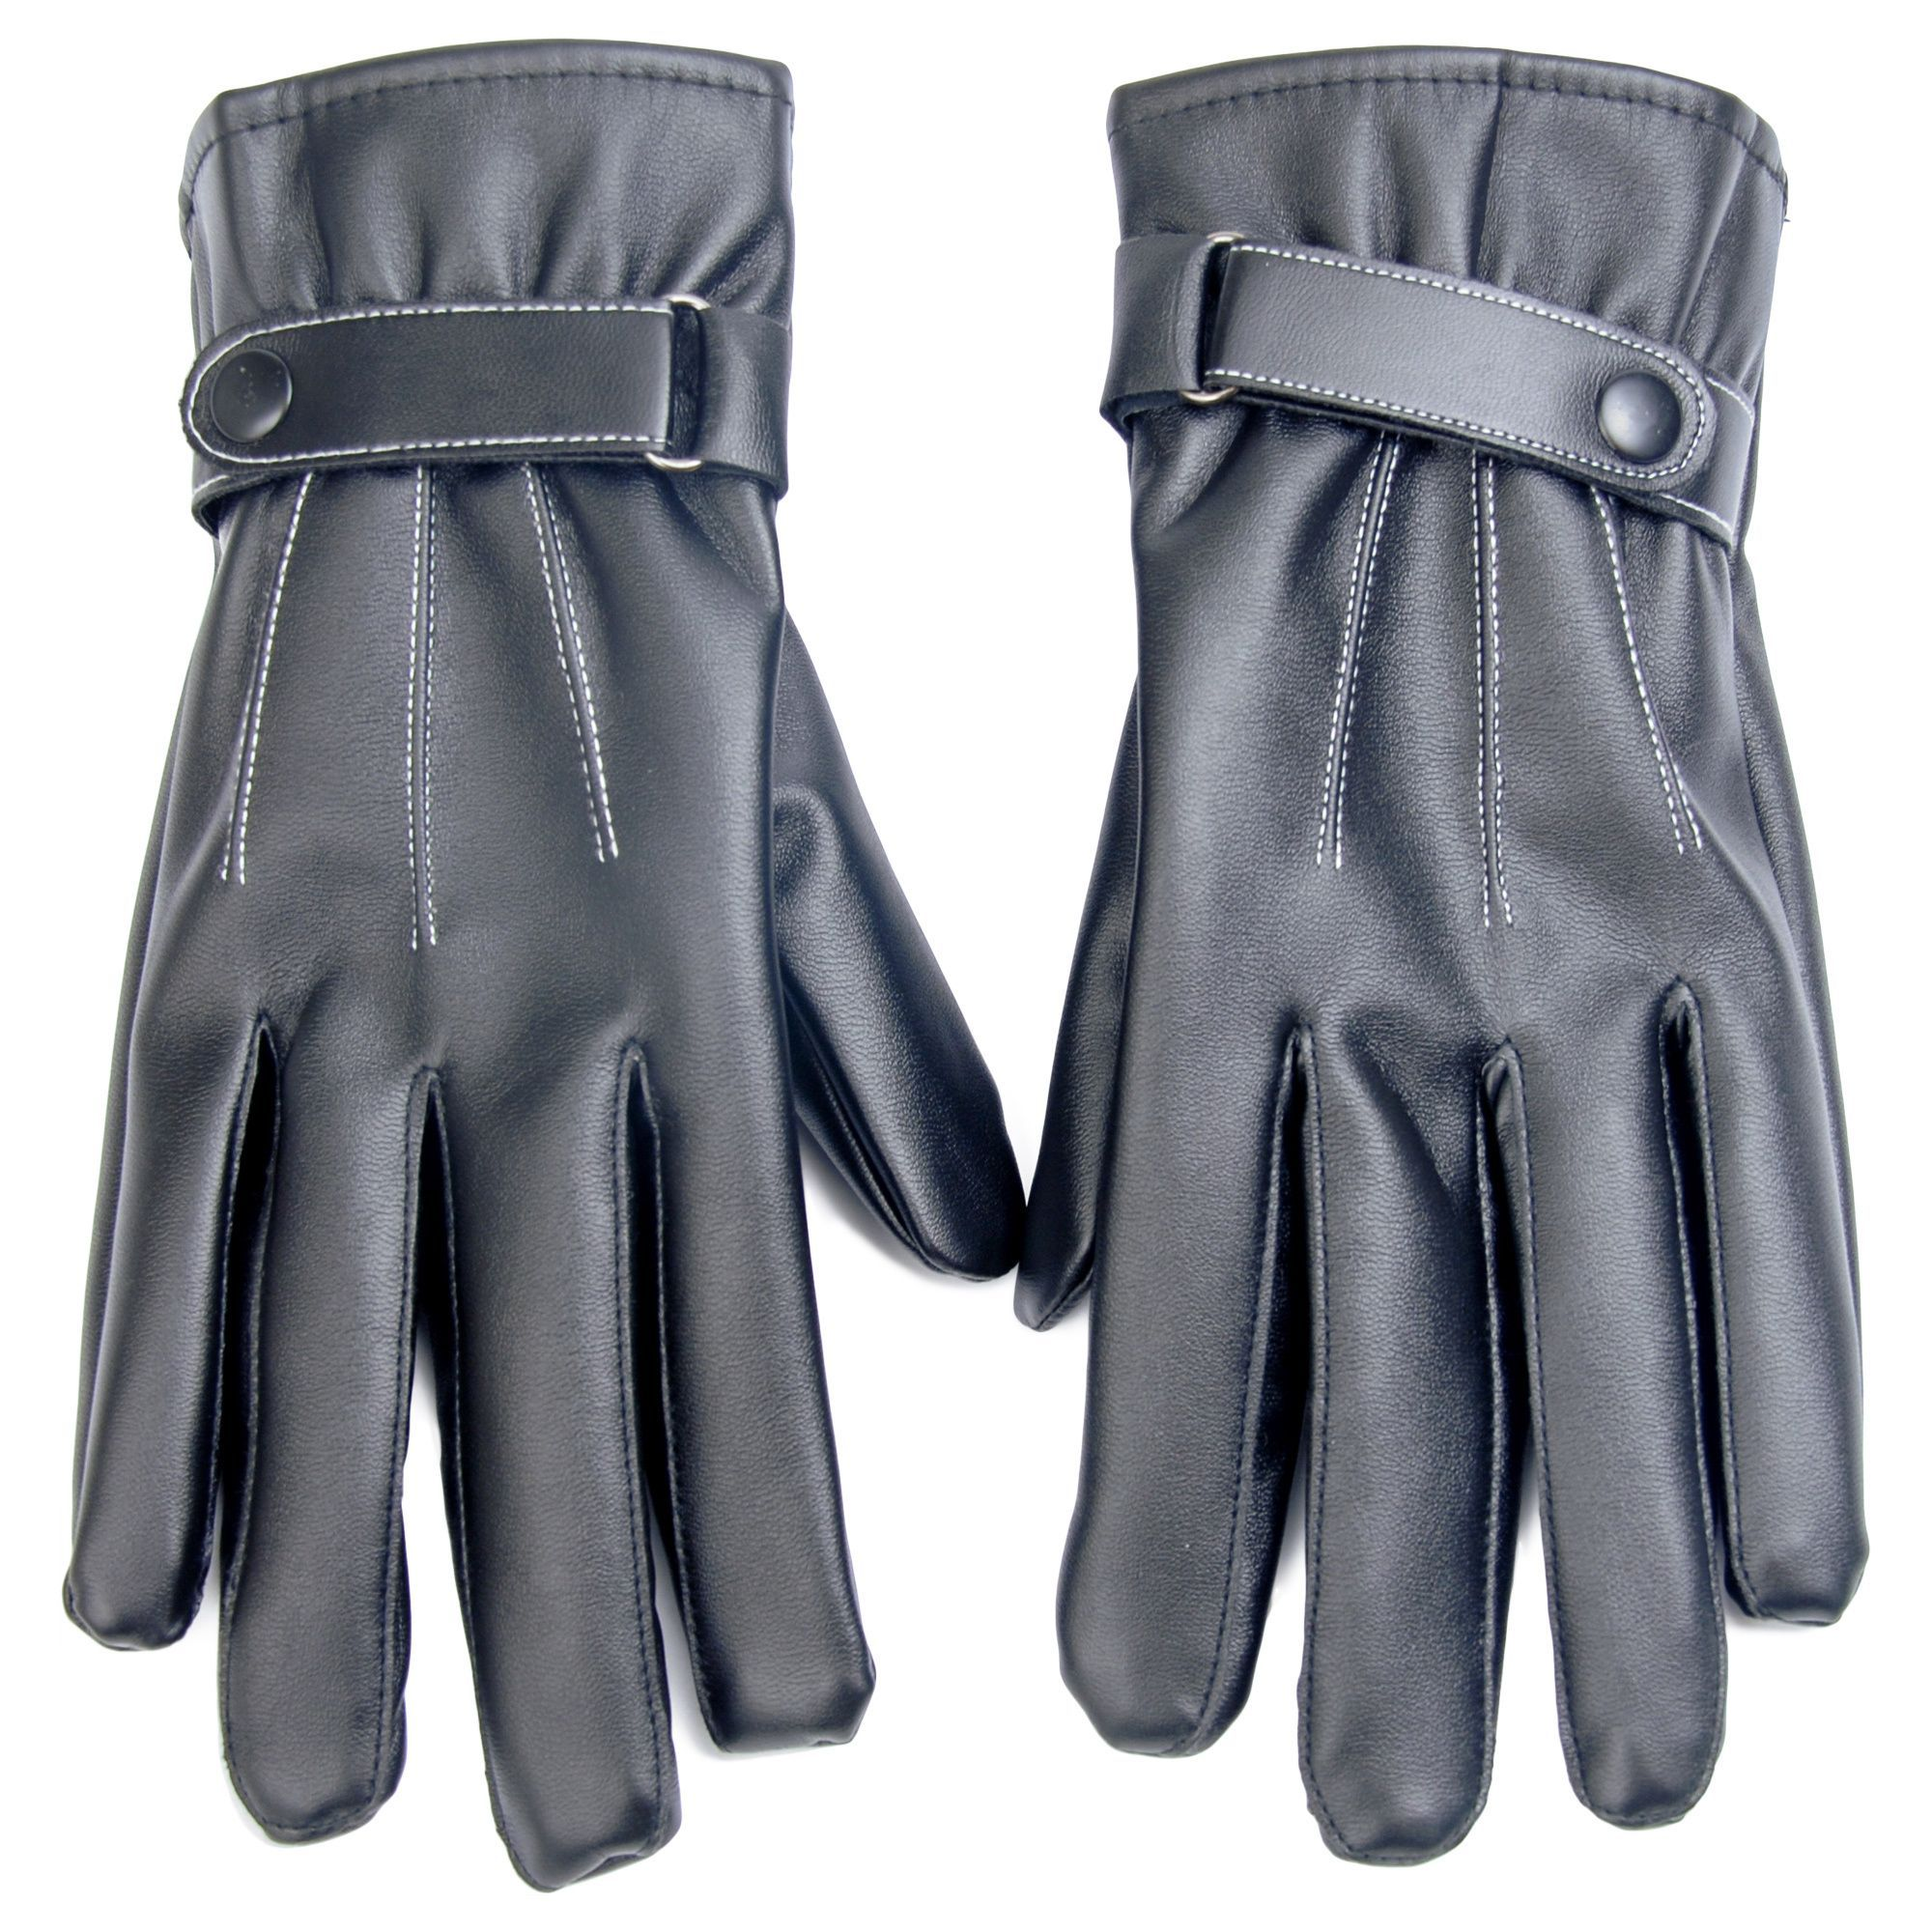 Fake leather driving gloves - Faux Leather Texting And Driving Gloves